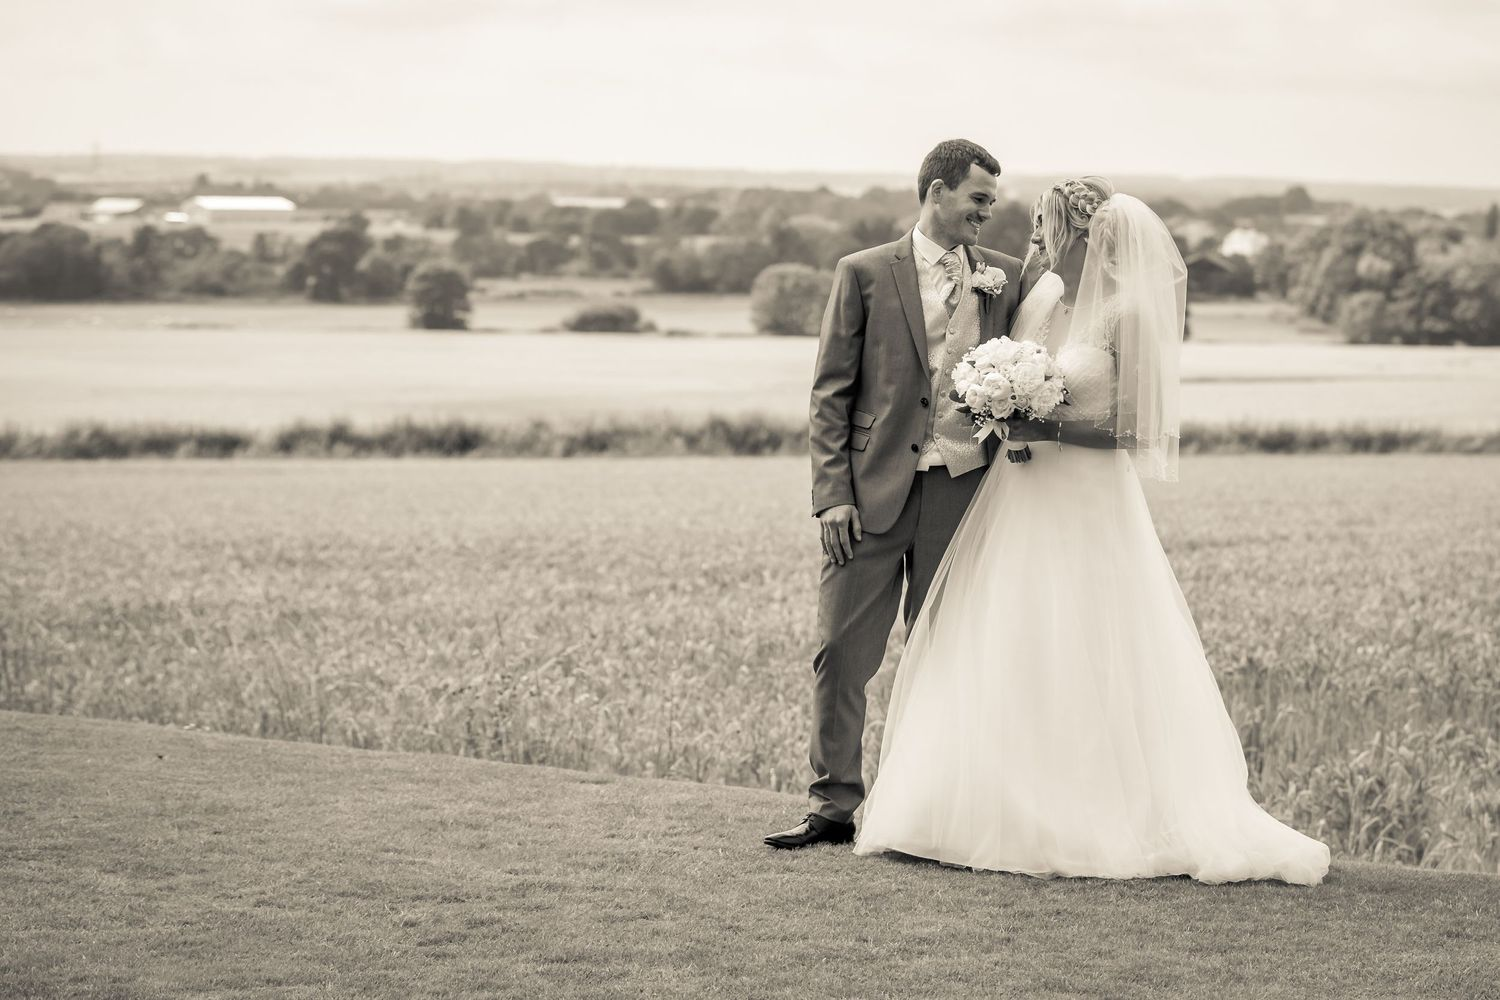 bride and groom smiling looking at each other in the gardens at west tower countryside in the background